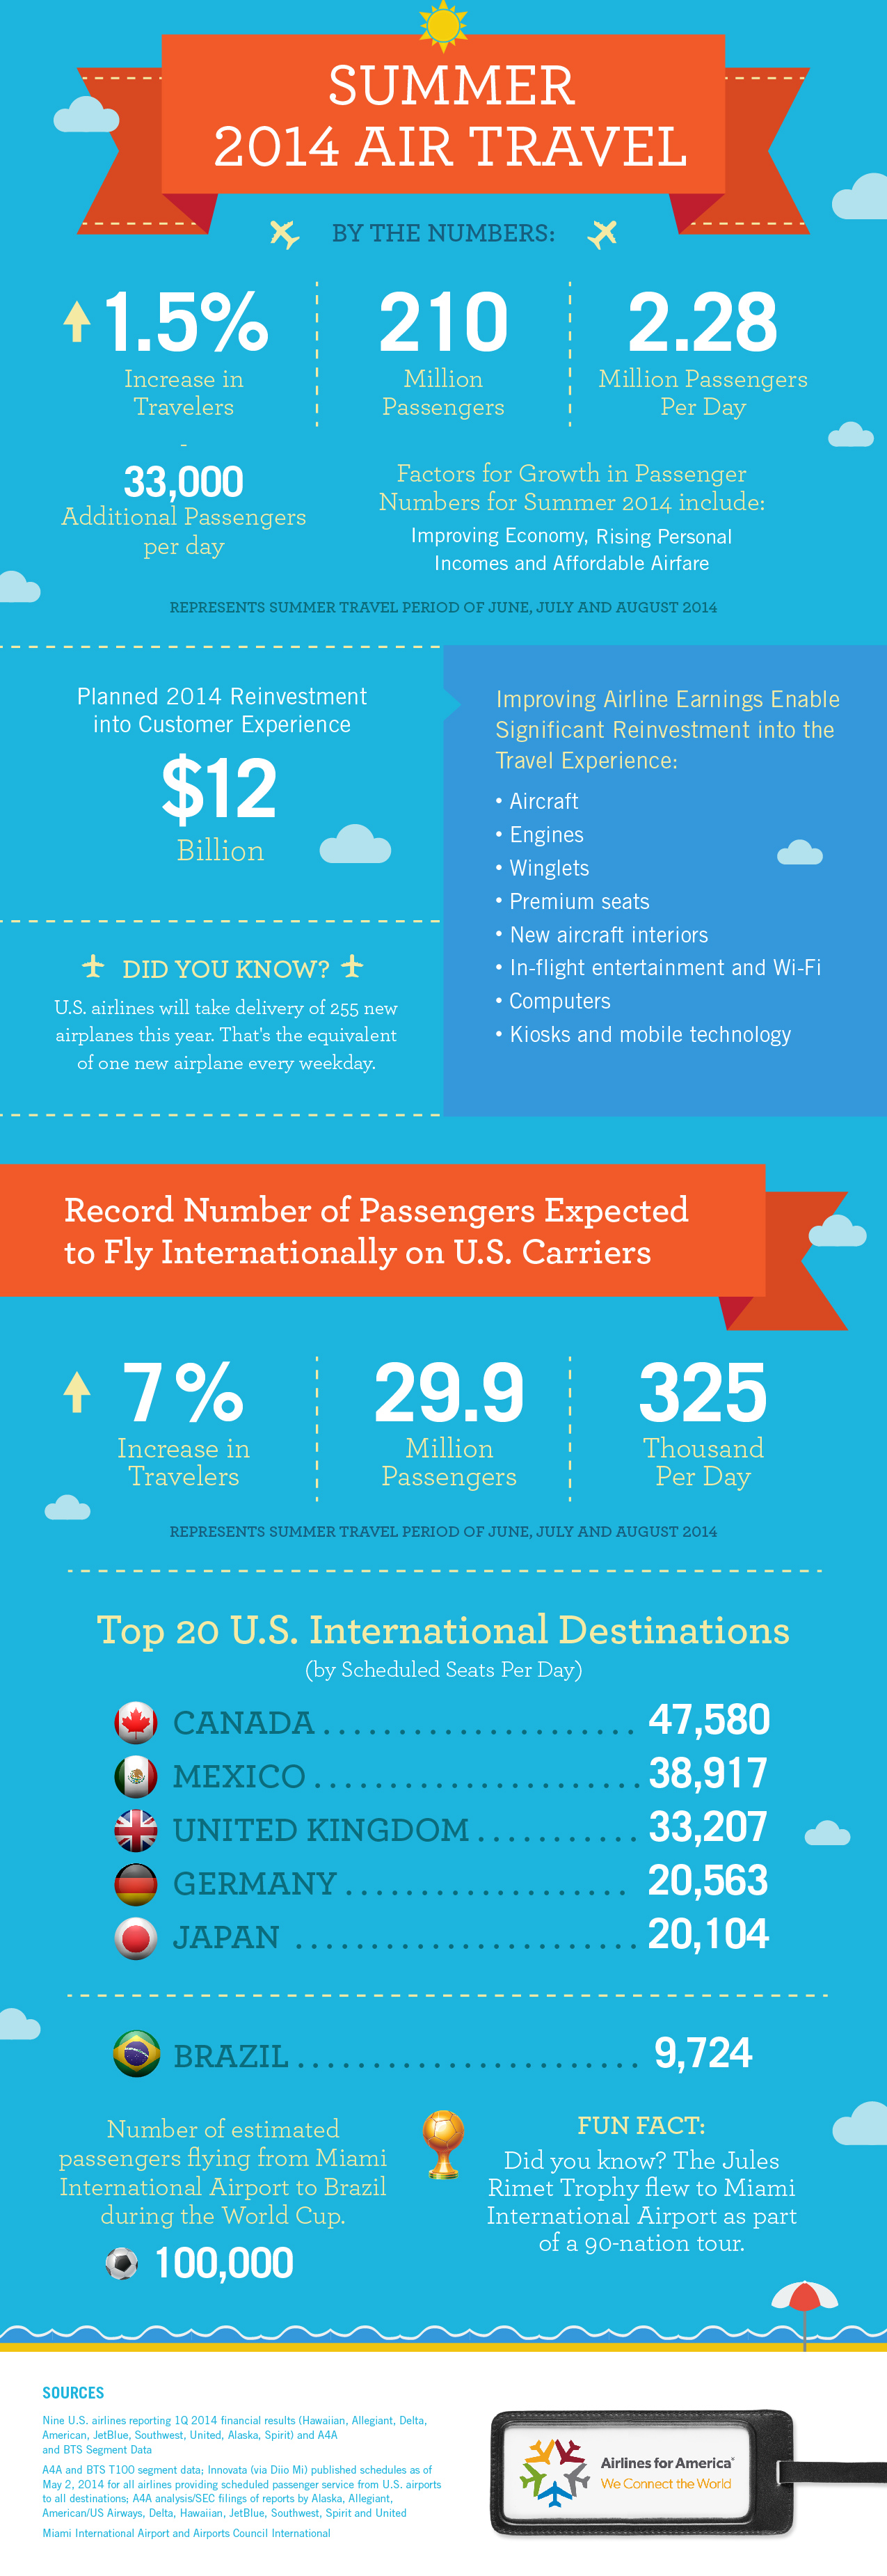 2014 Summer Air Travel by the Numbers